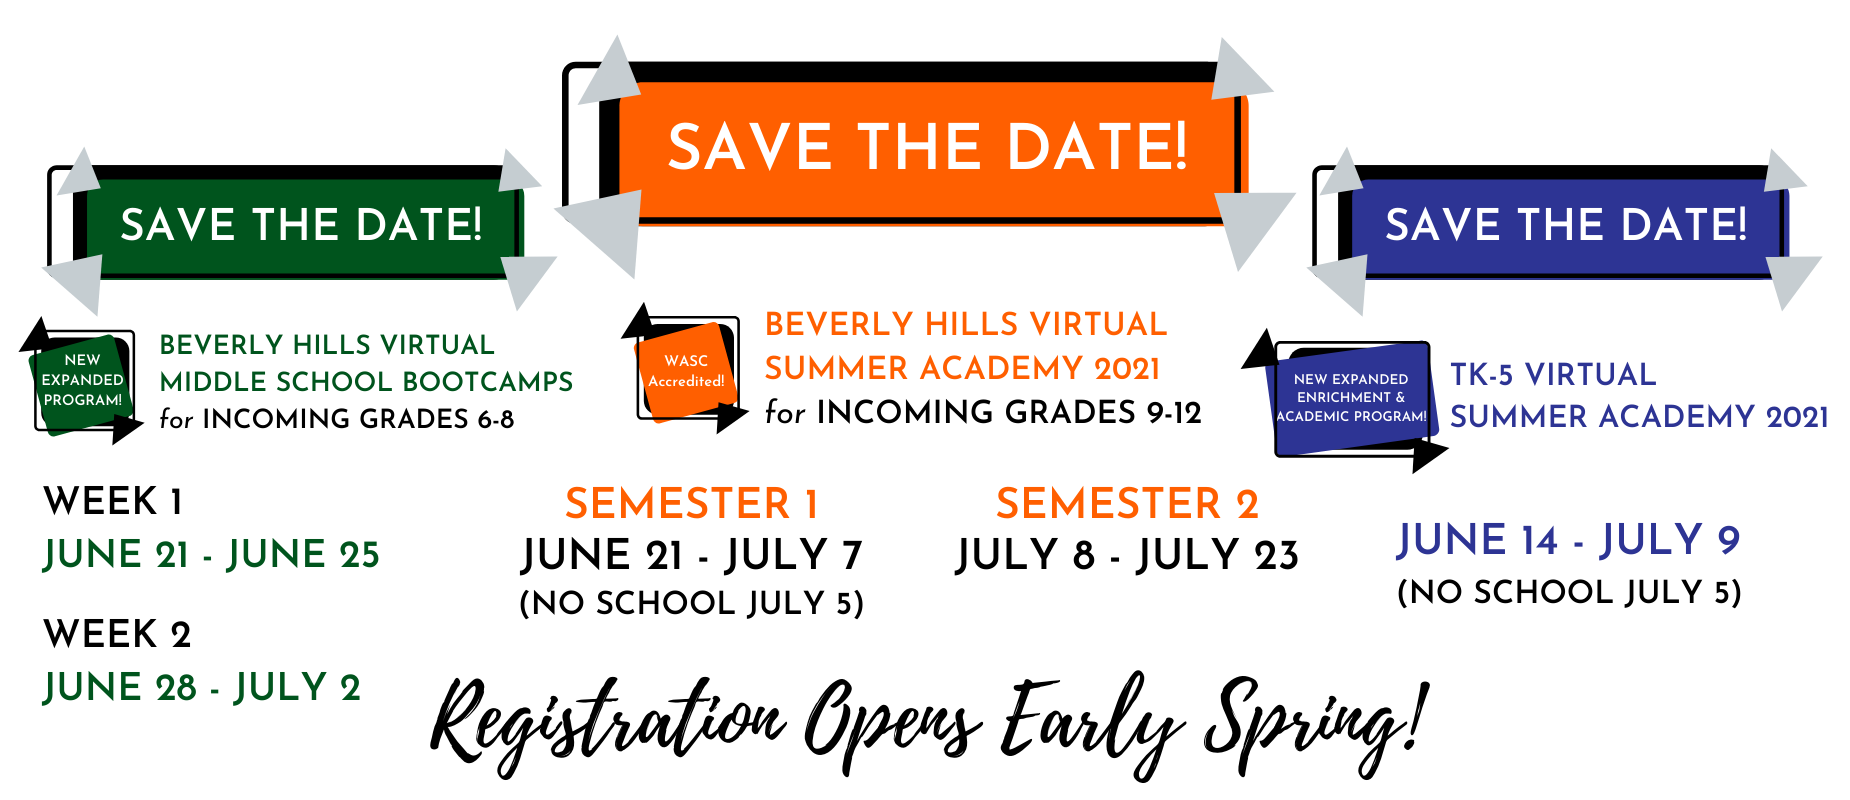 Summer Academy Save the Date